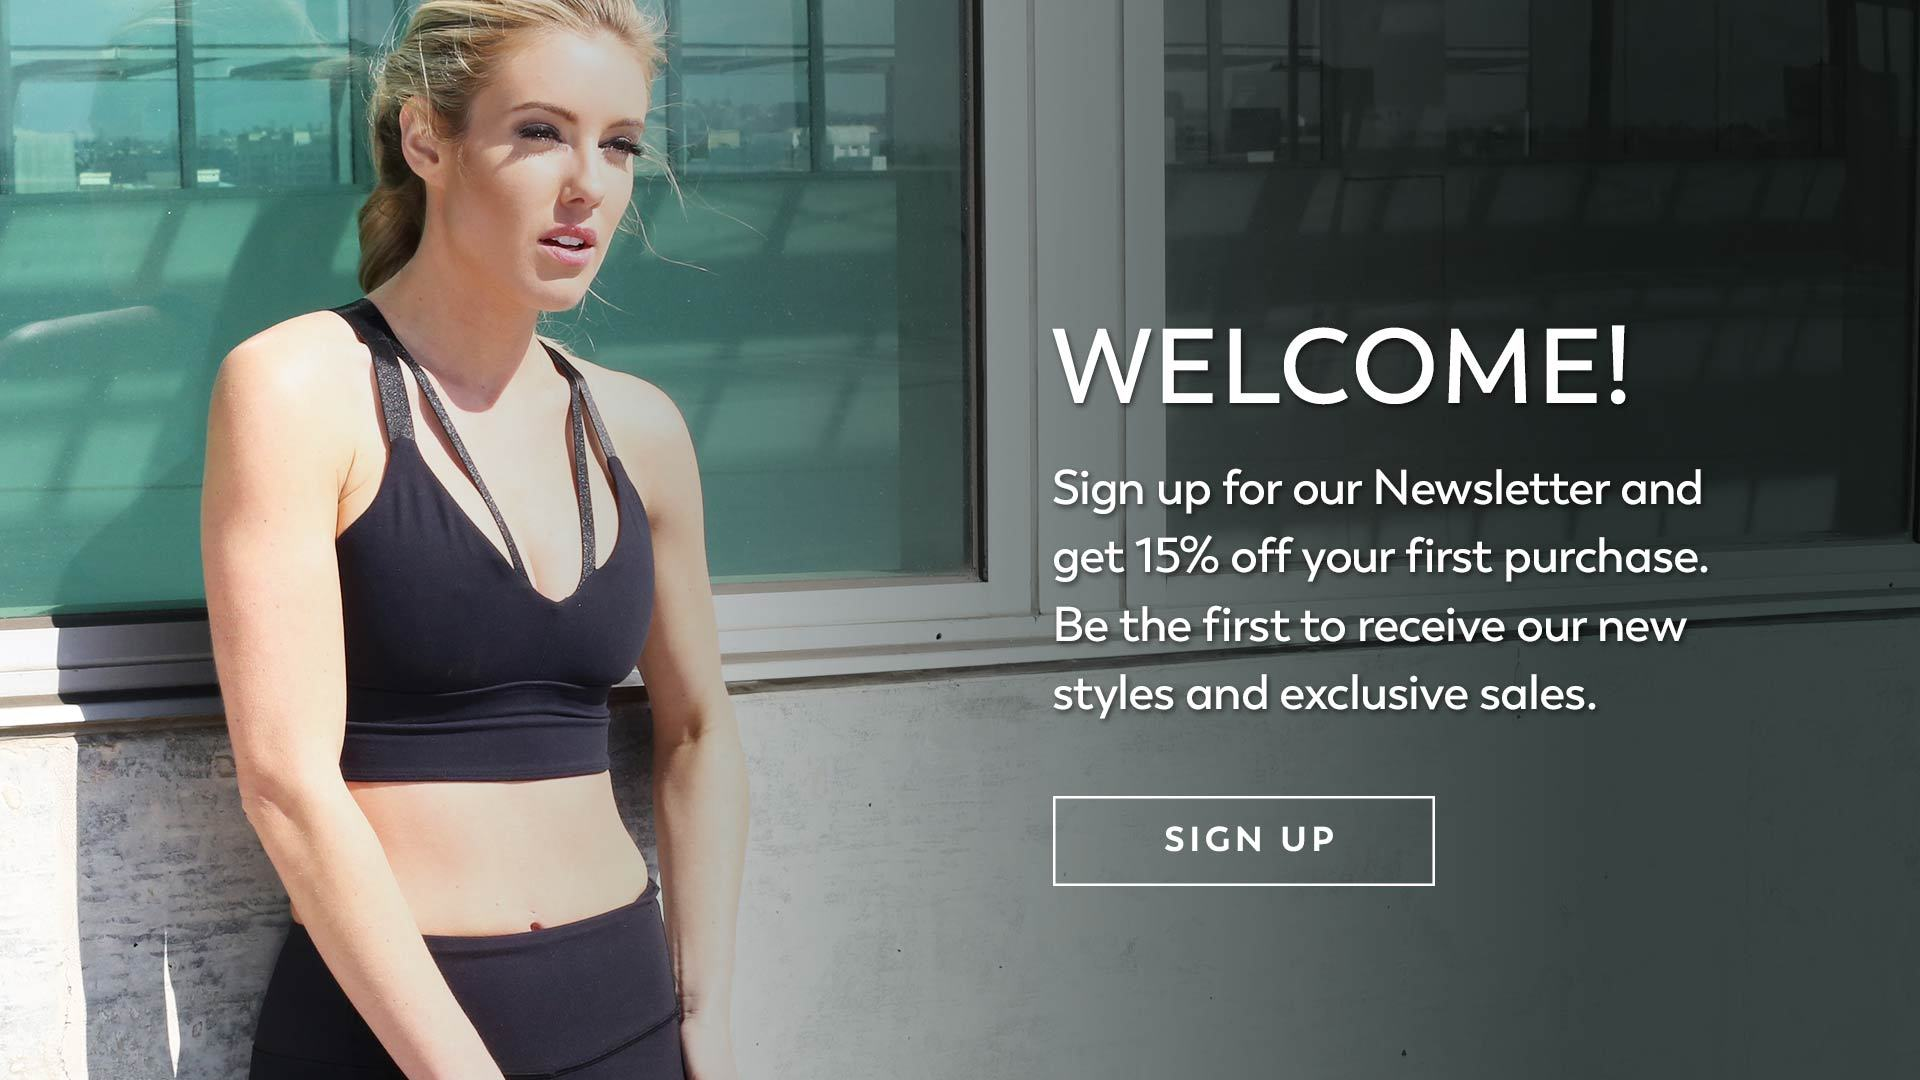 Newsletter Sign Up 15 Percent Discount